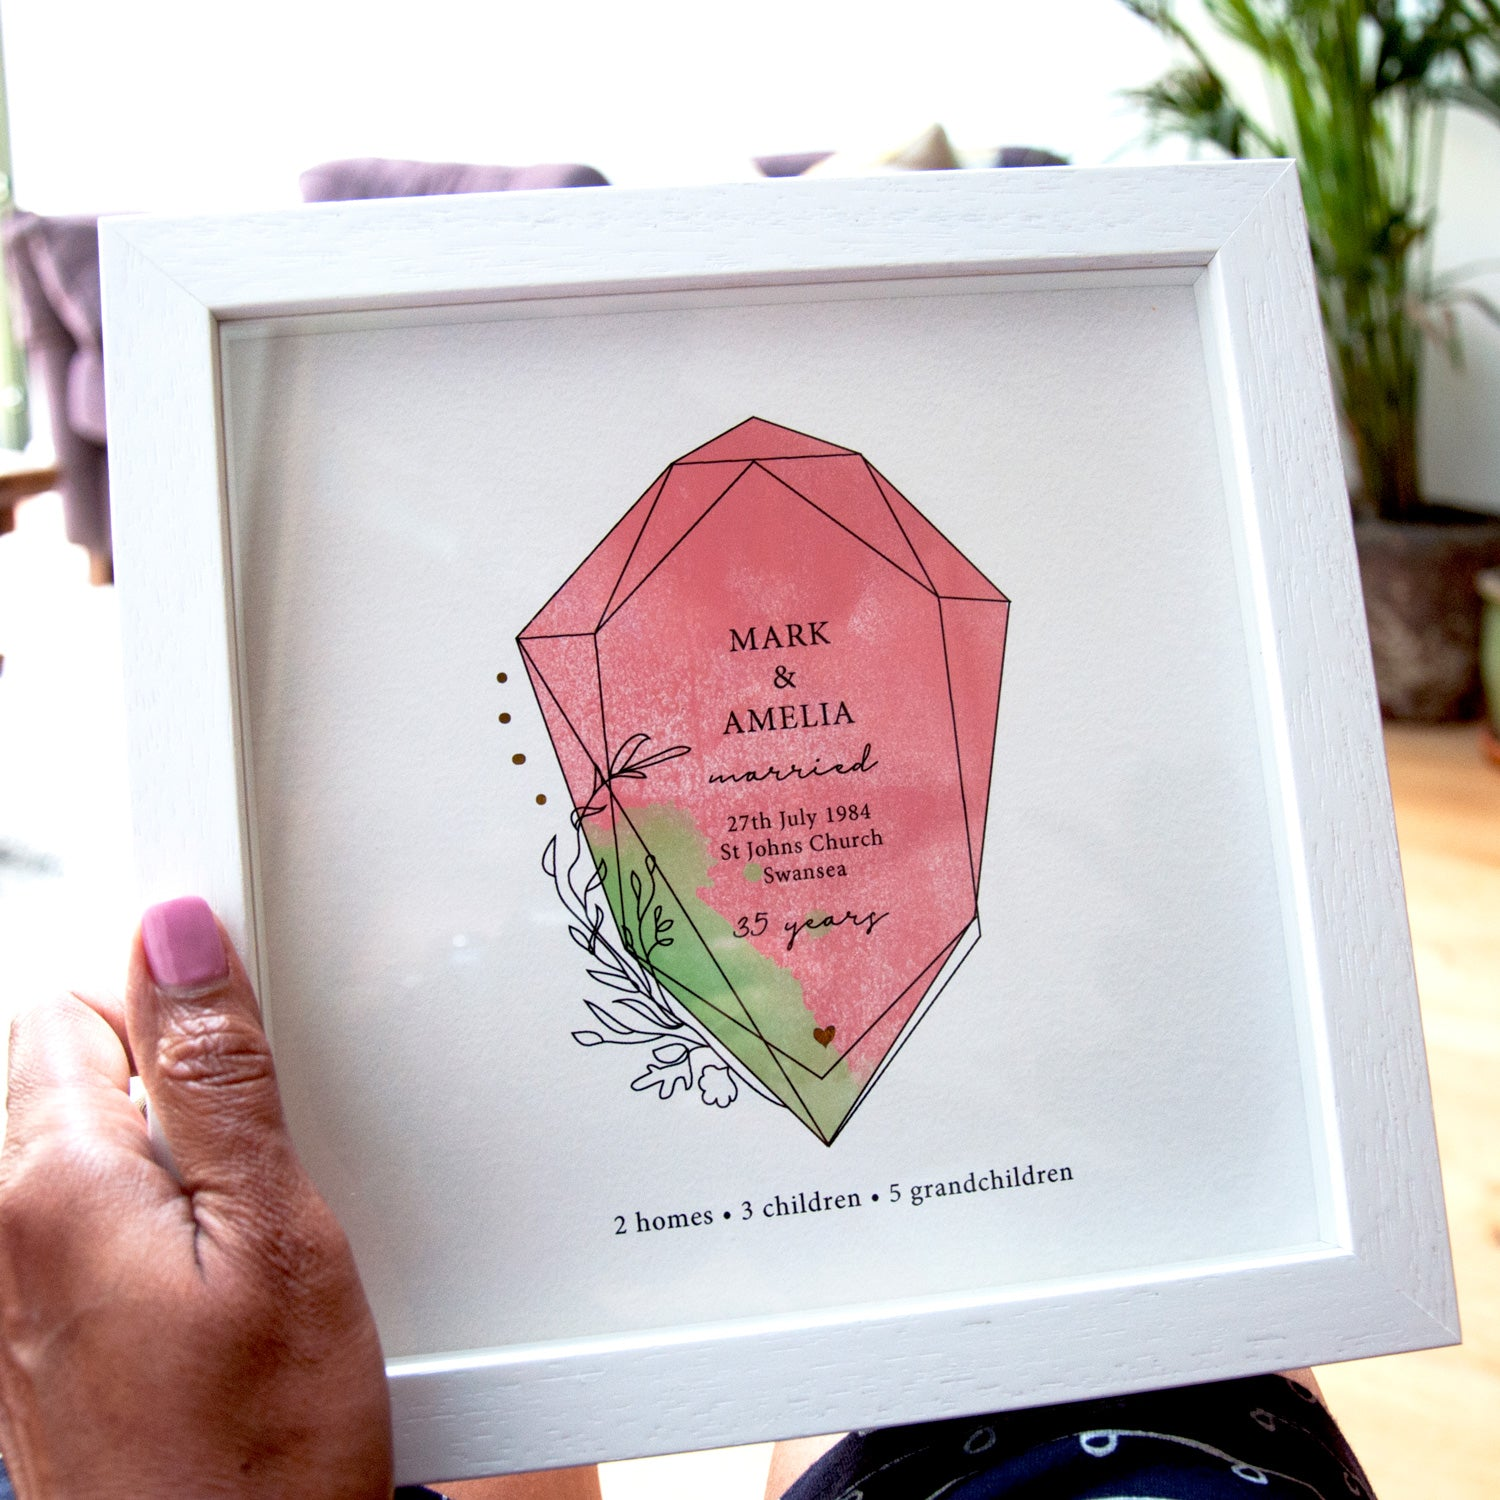 antdesigngifts.co.uk 35th anniversary gift for parents with coral and jade gemstone and gold foil accents. Personalised with names, date of wedding, place of wedding and family details